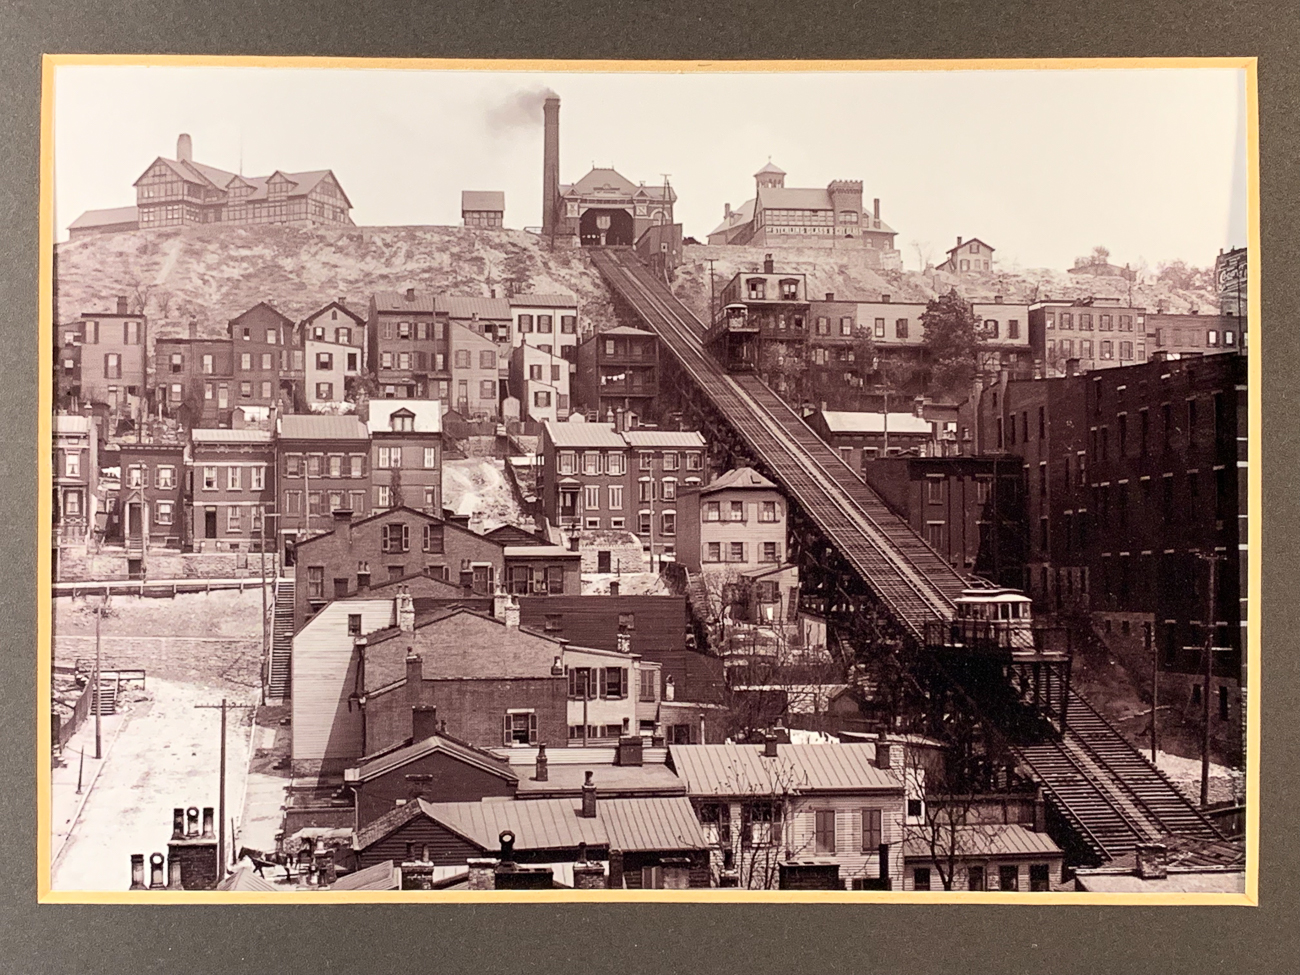 Before cars and buses began easily conquering the hills of Cincinnati, inclined planes were built to transport people from the city below to the hills above. Platforms on tracks, often times made to accept streetcars, slowly raised and lowered generations of Cincinnatians up and down steep terrain. While they no longer stand, clues as to where they were remain. / Image of Mt. Adams Incline // Published: 1.2.19